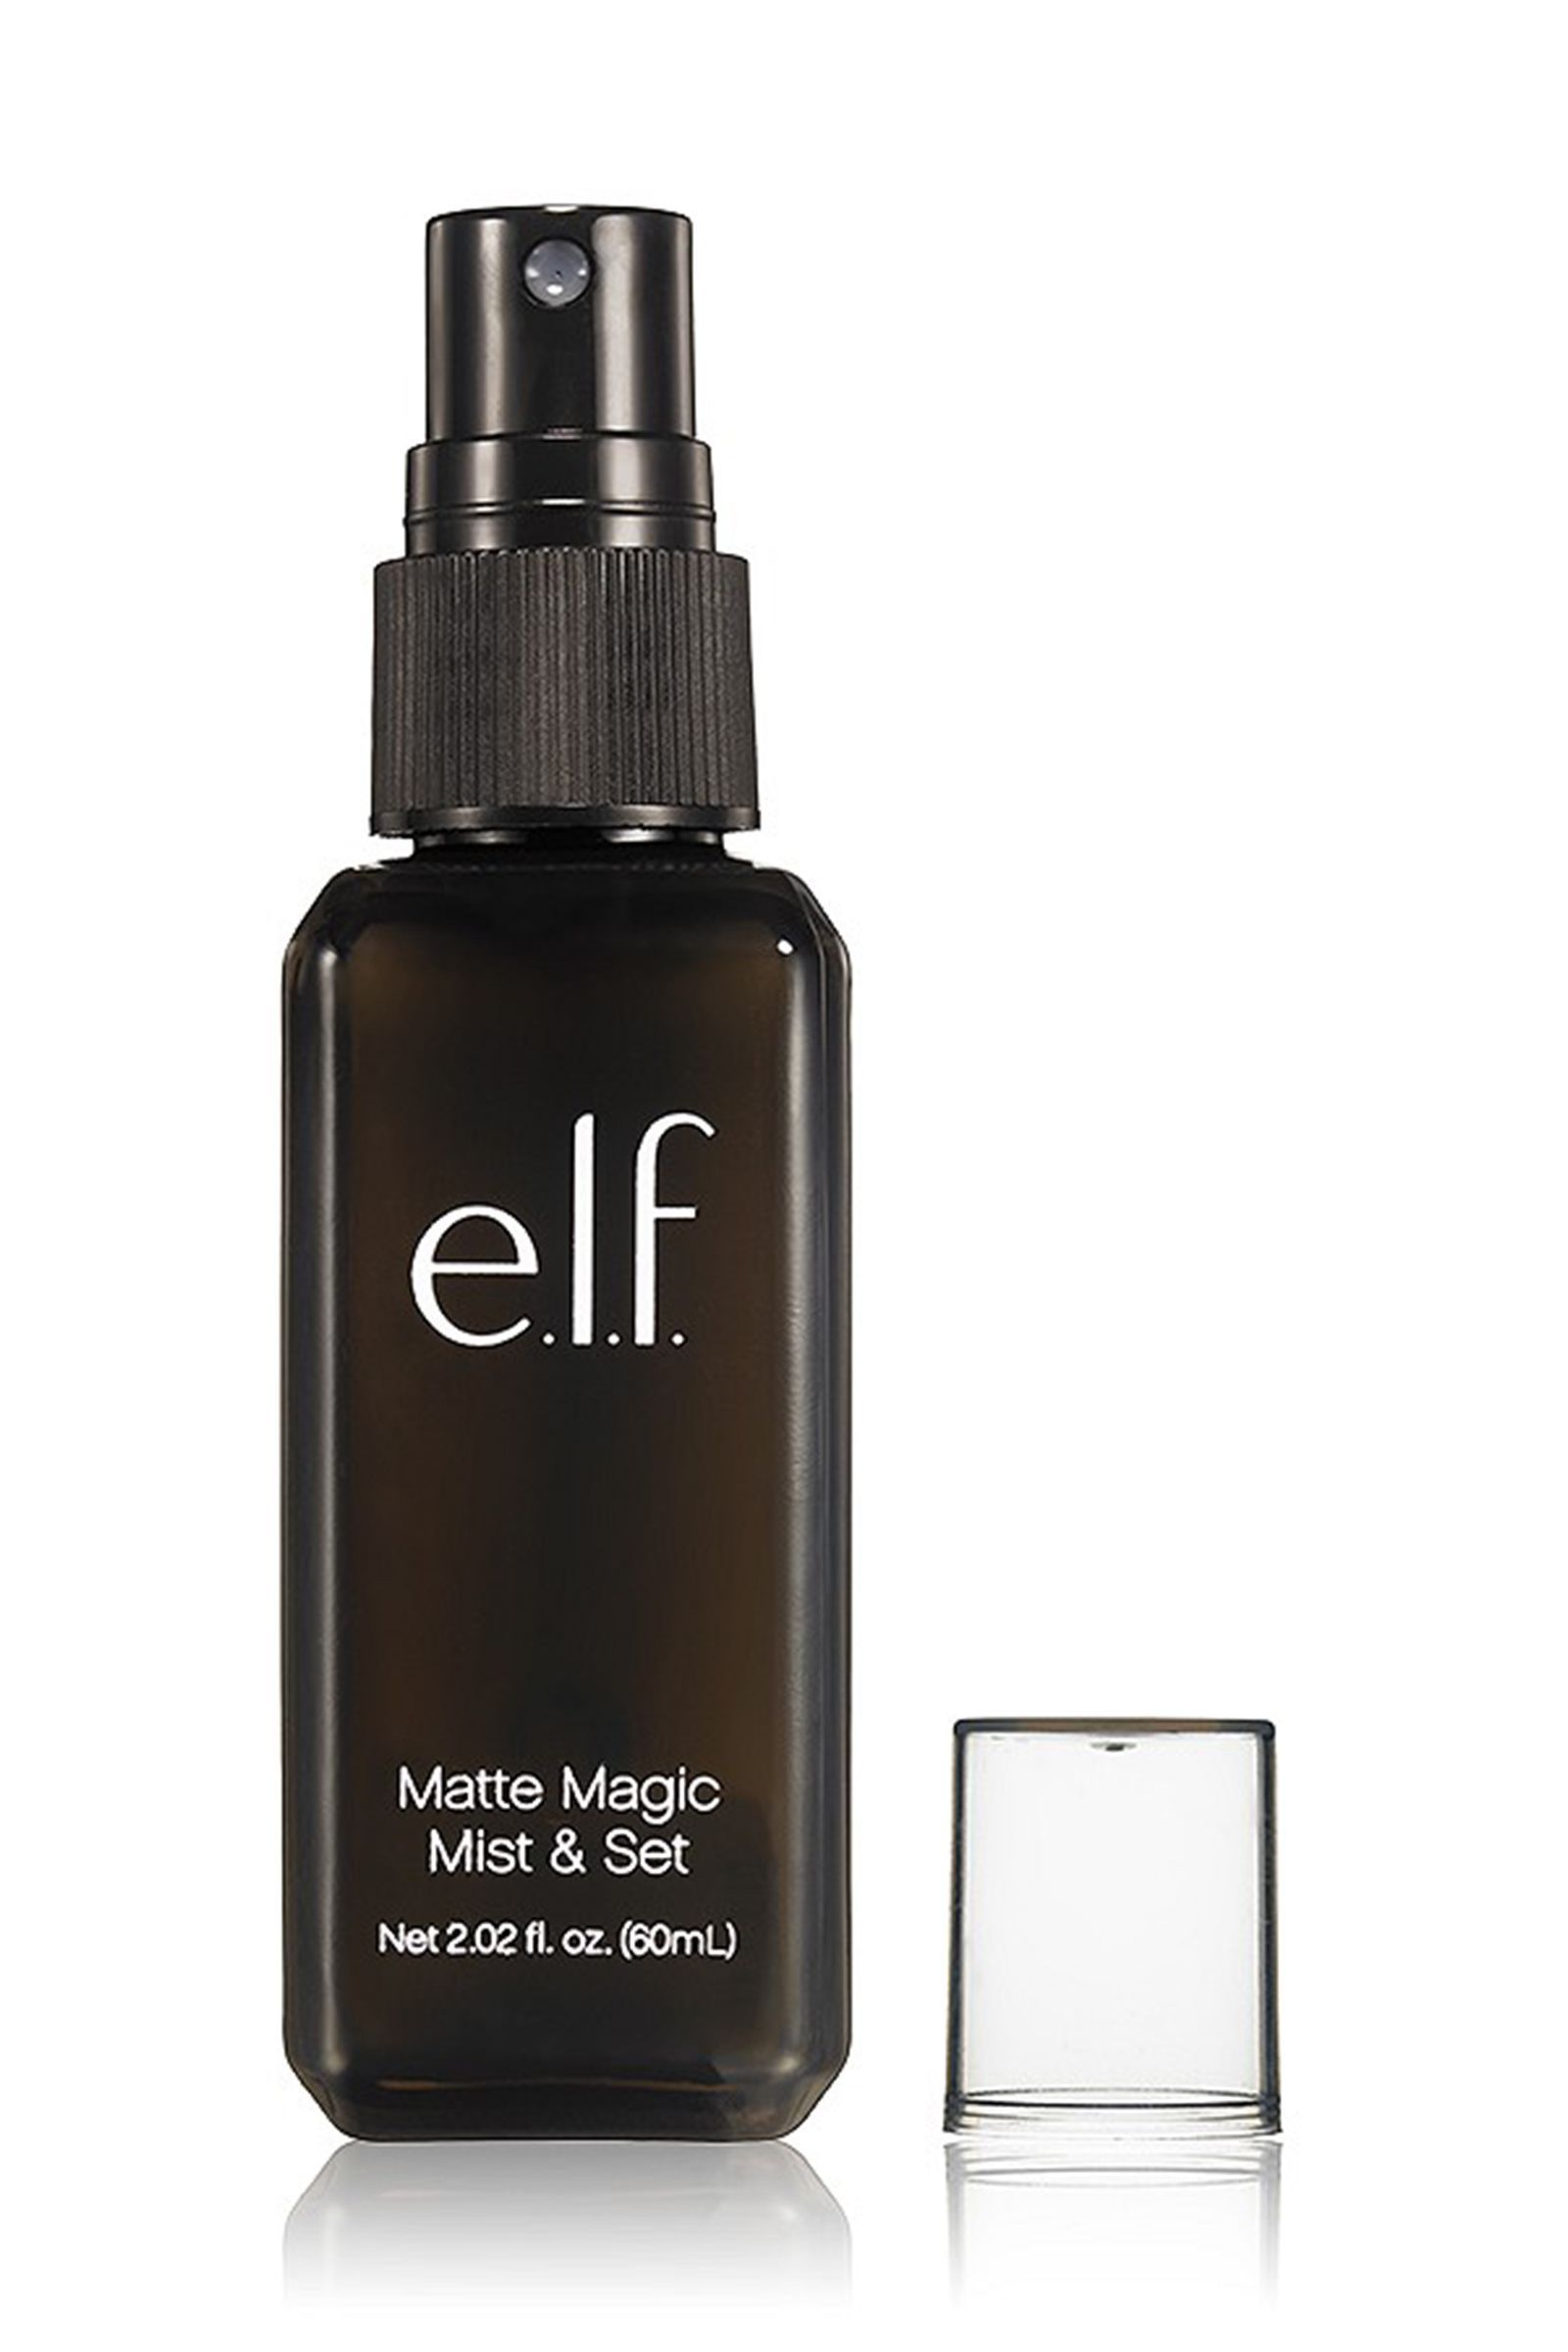 Mist with Coconut Water Makeup setting spray, Elf